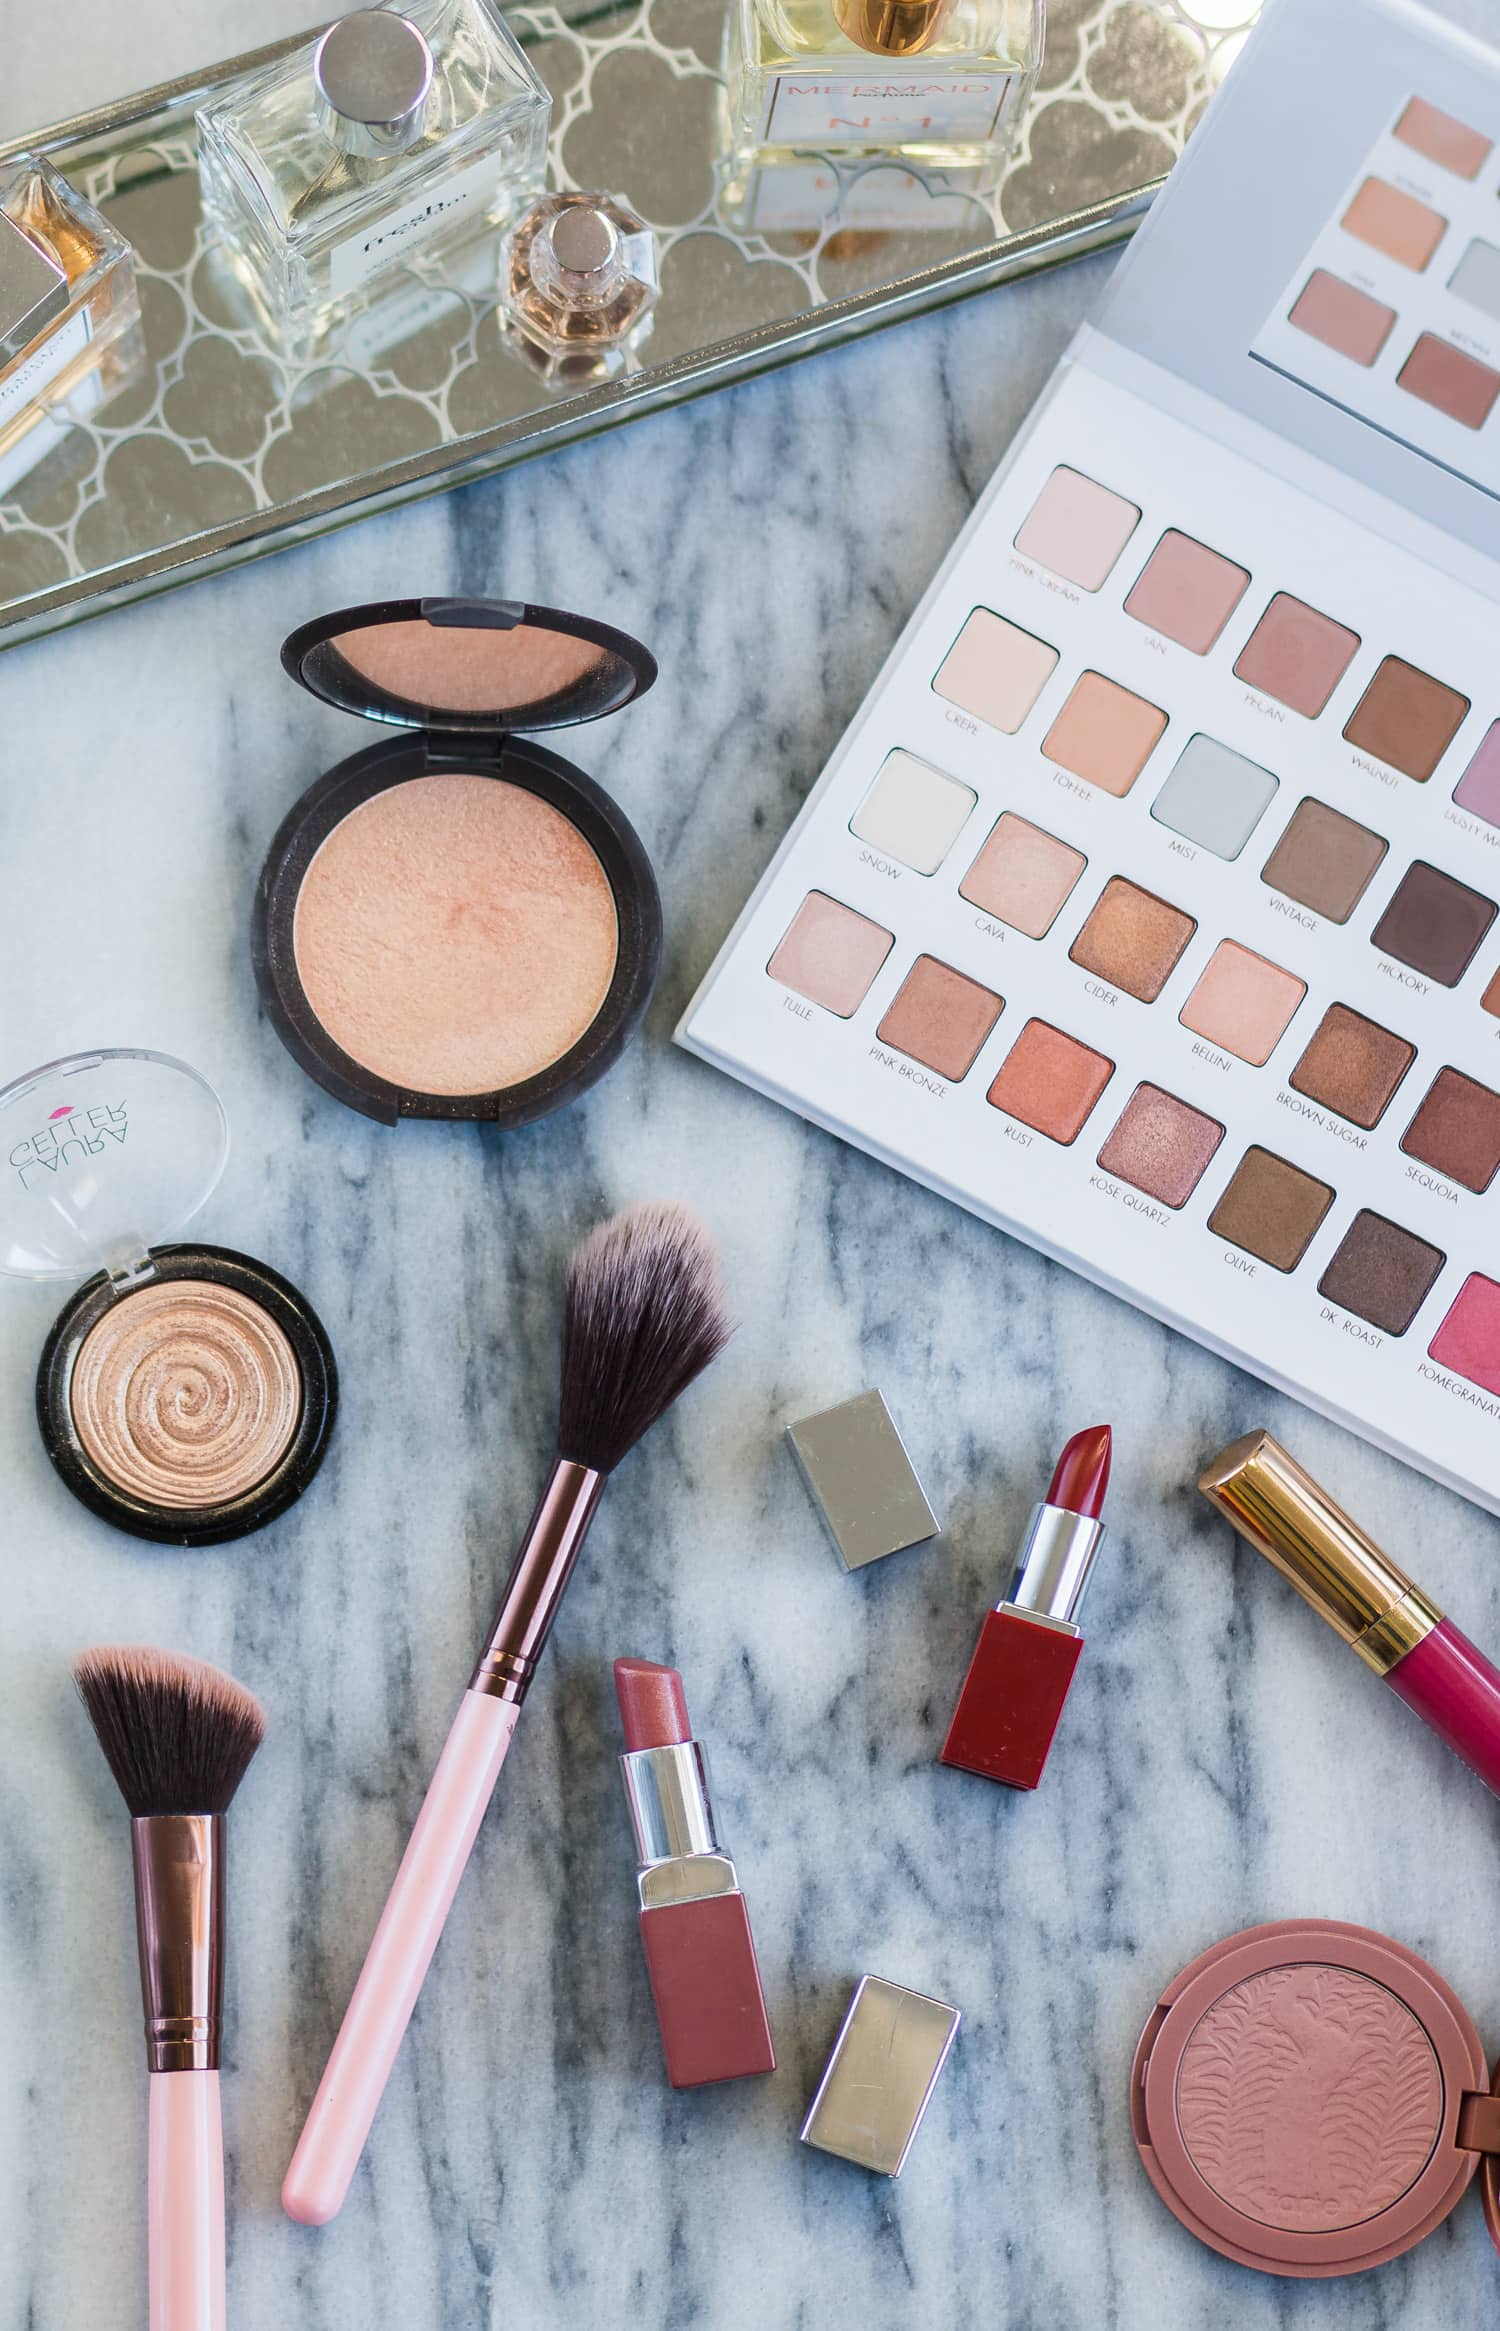 how-to-update-your-fall-makeup-routine-beauty-blogger-ashley-brooke-nicholas-9522